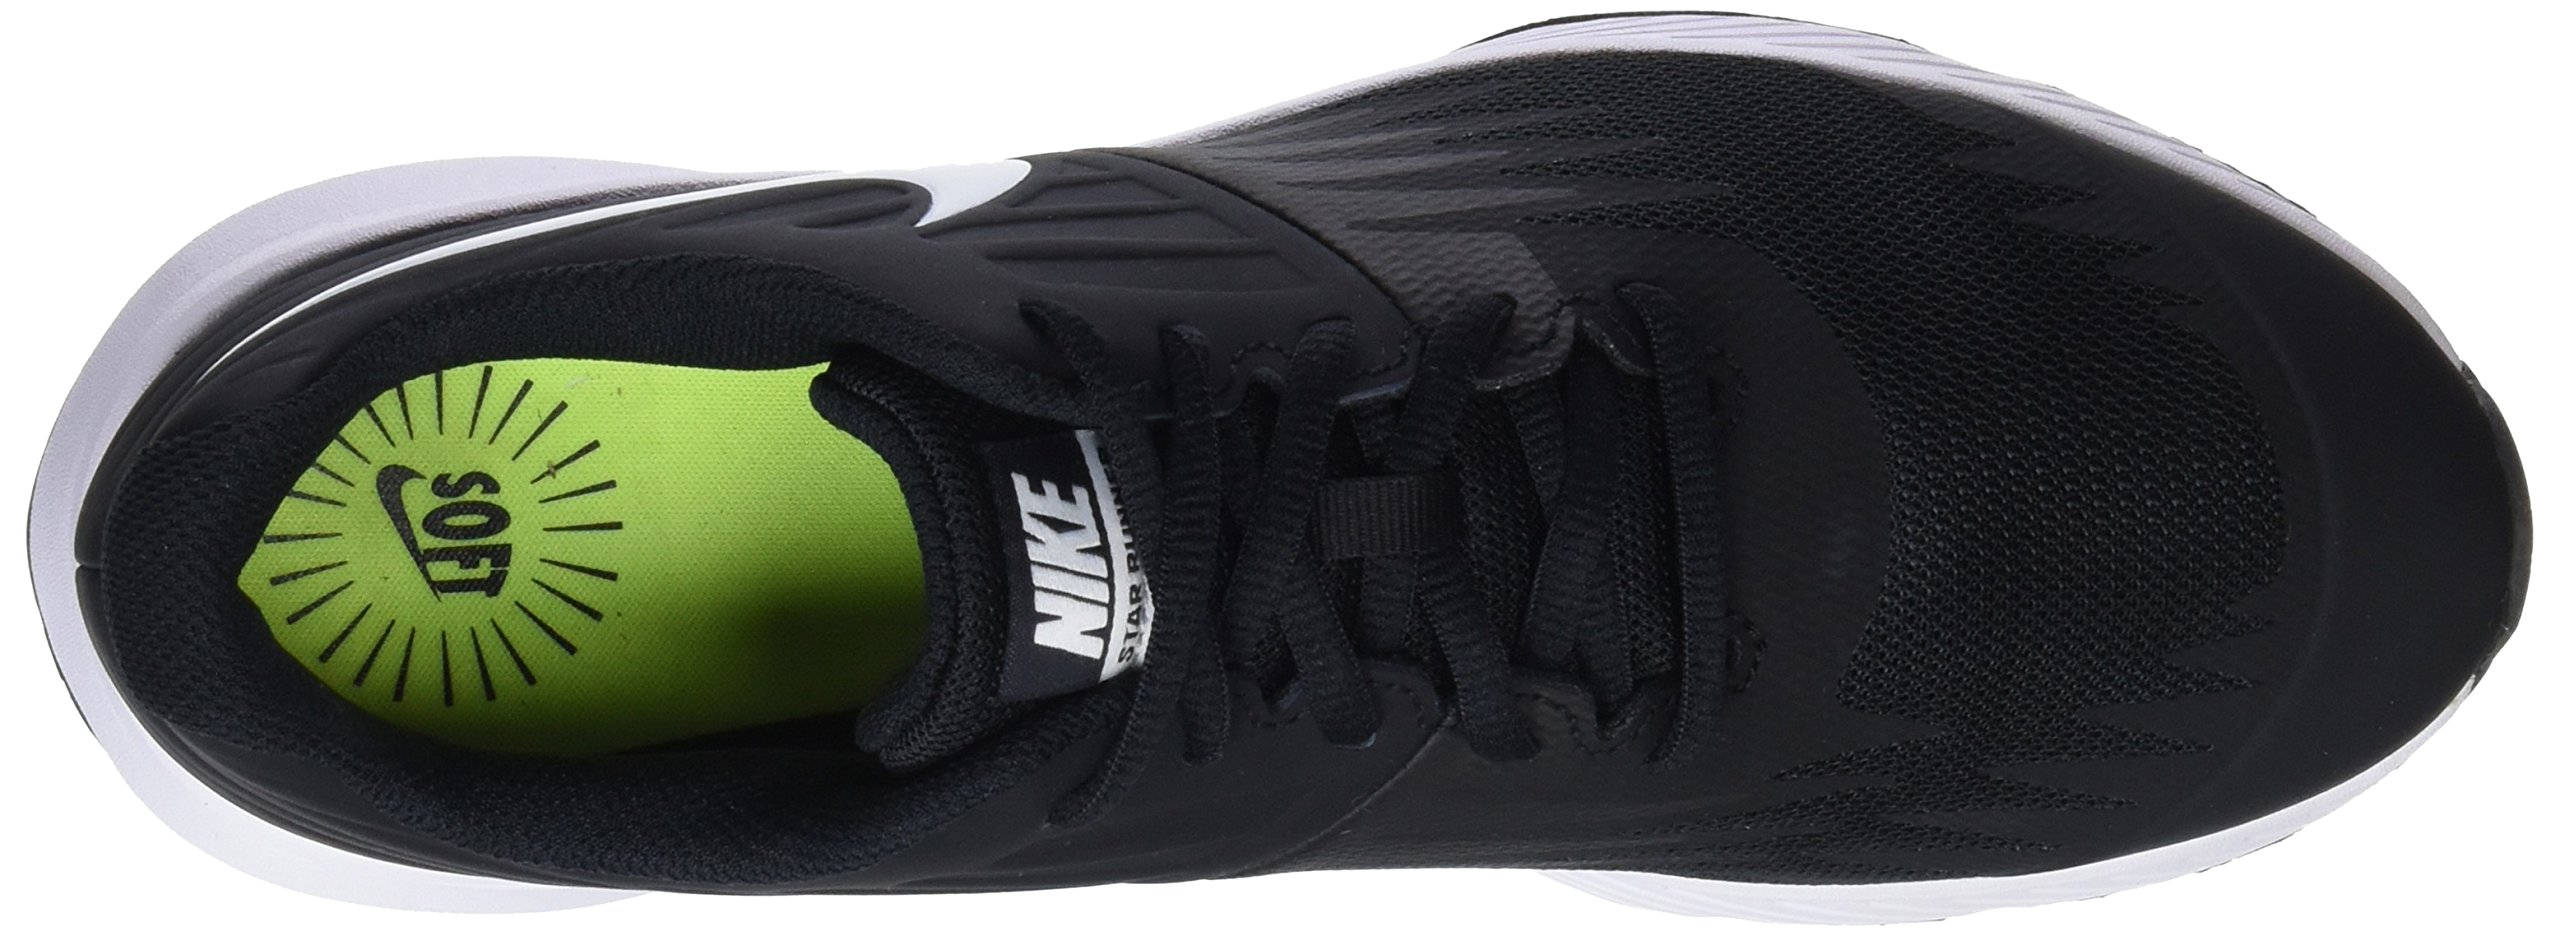 Nike Kids' Grade School Star Runner Running Shoes (3.5, Black/White) by Nike (Image #7)